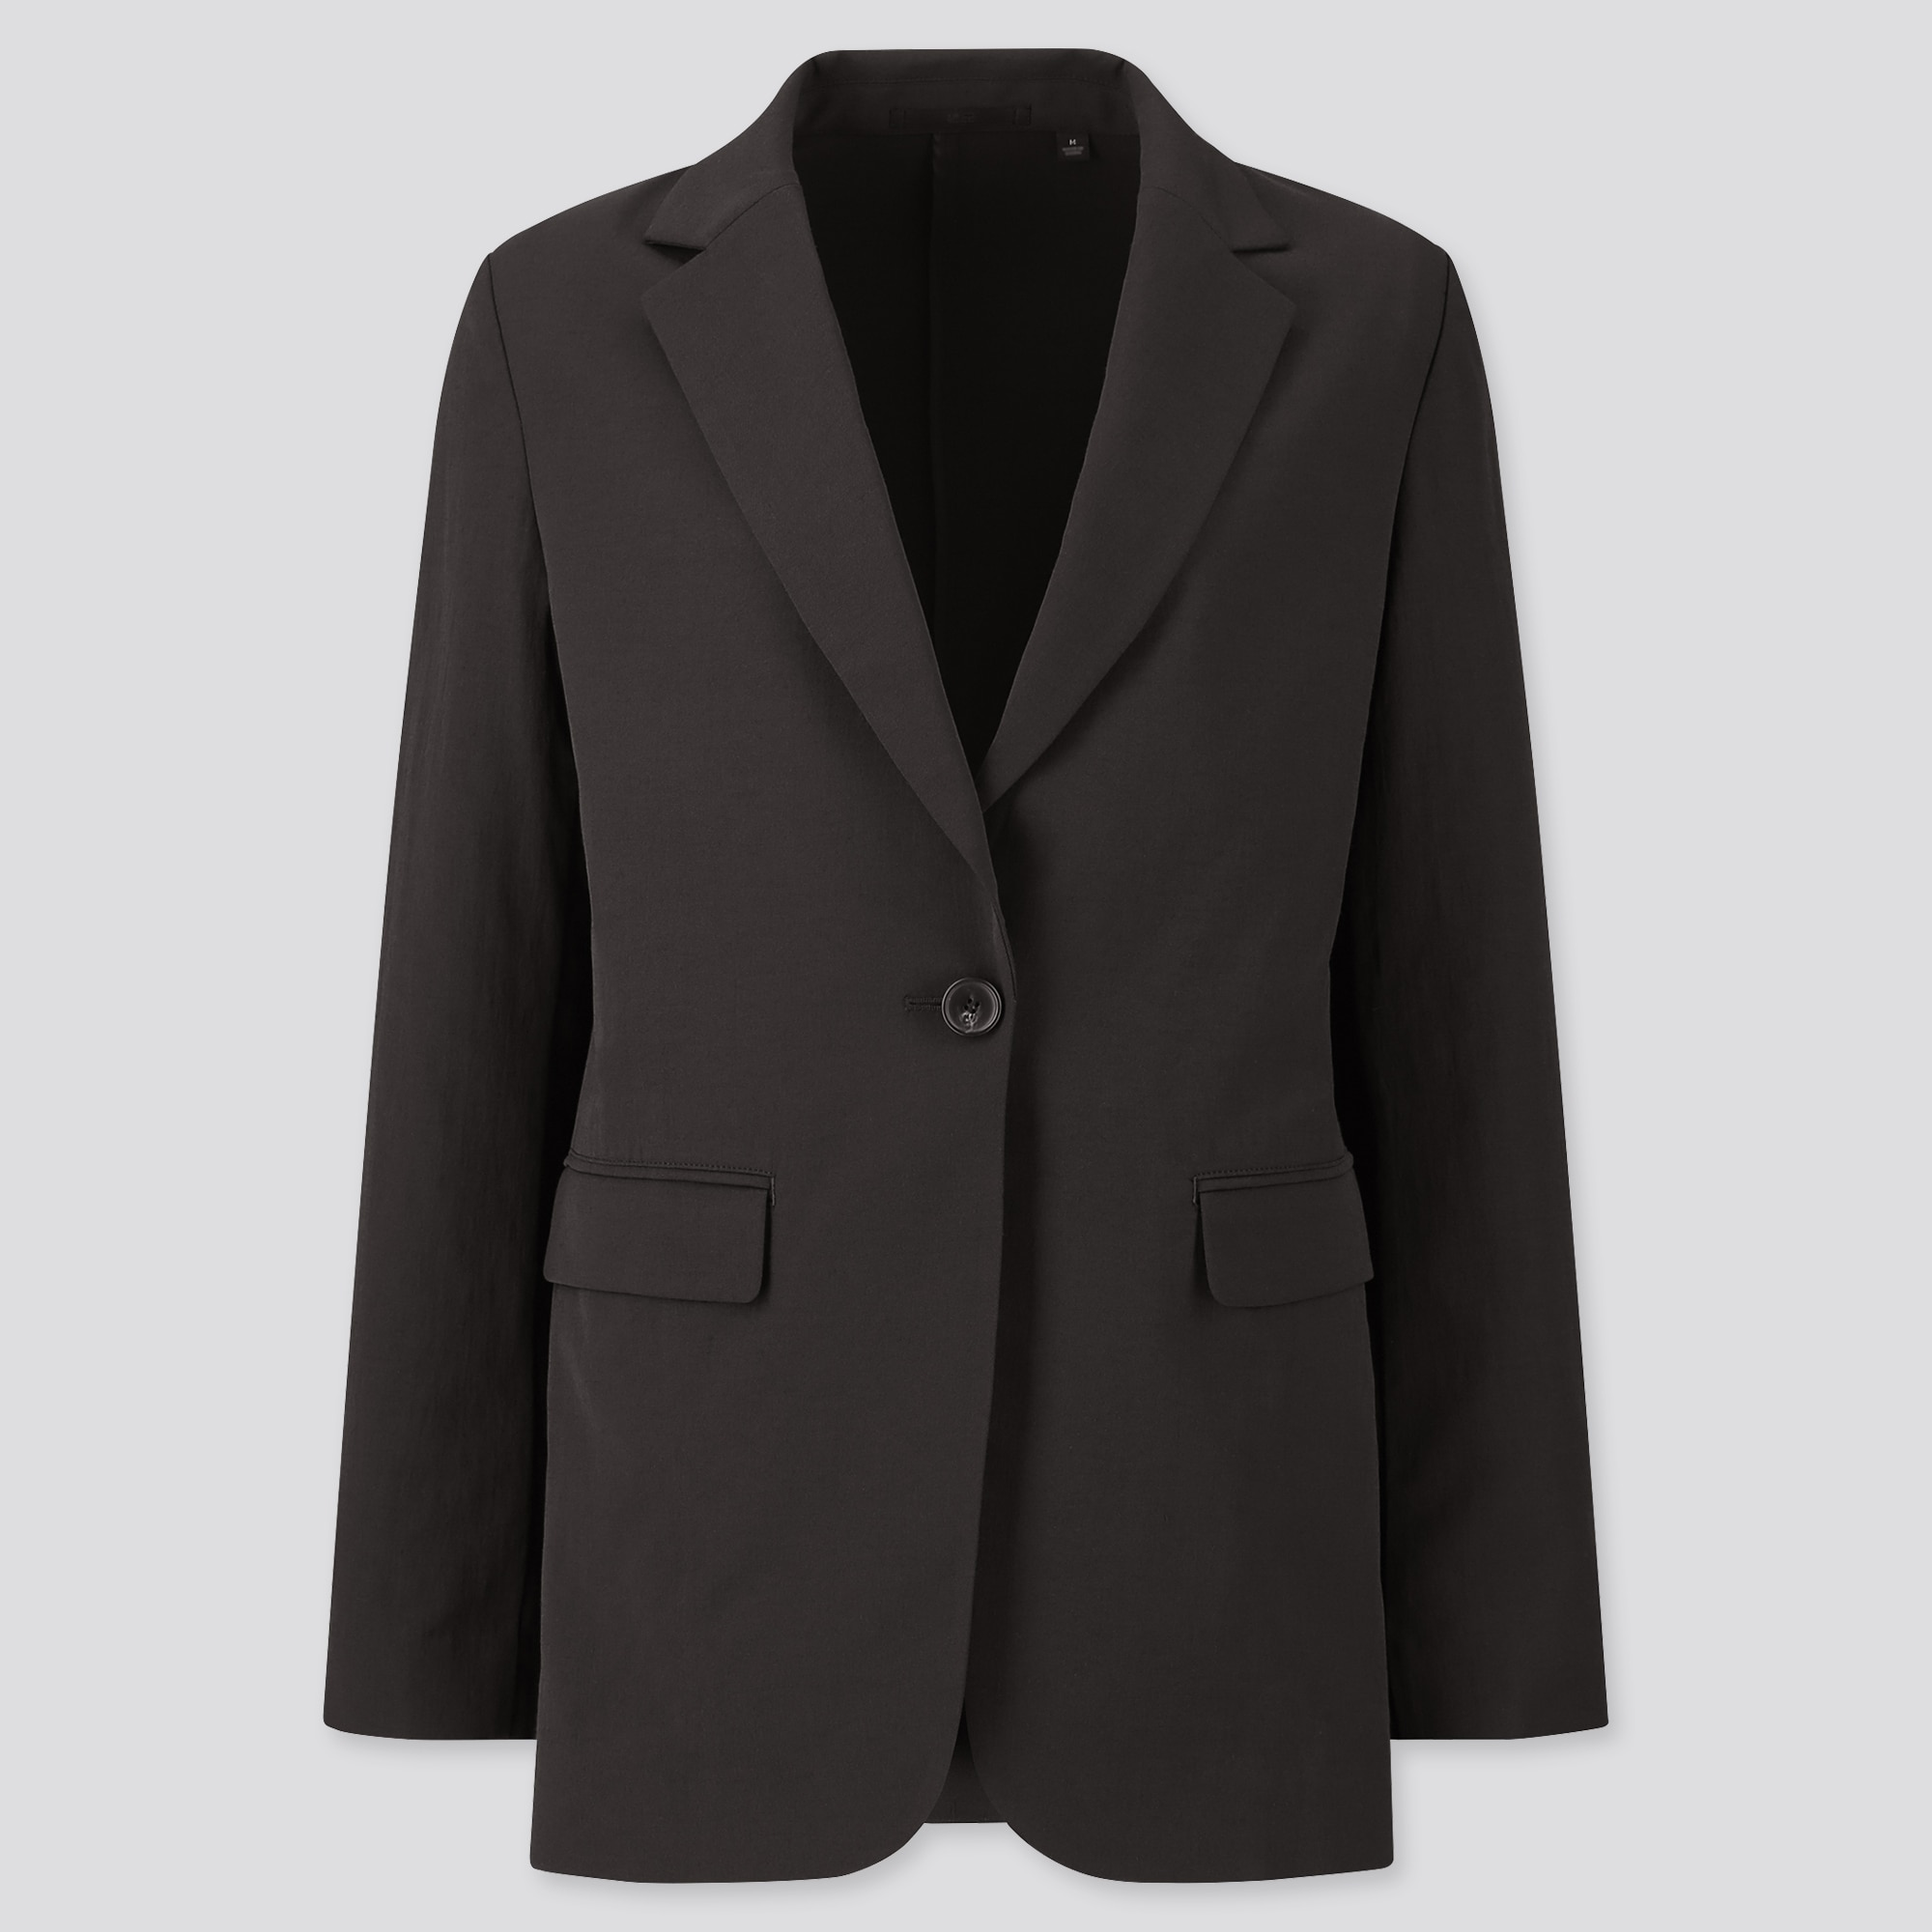 WOMEN UV PROTECTION RELAXED JACKET